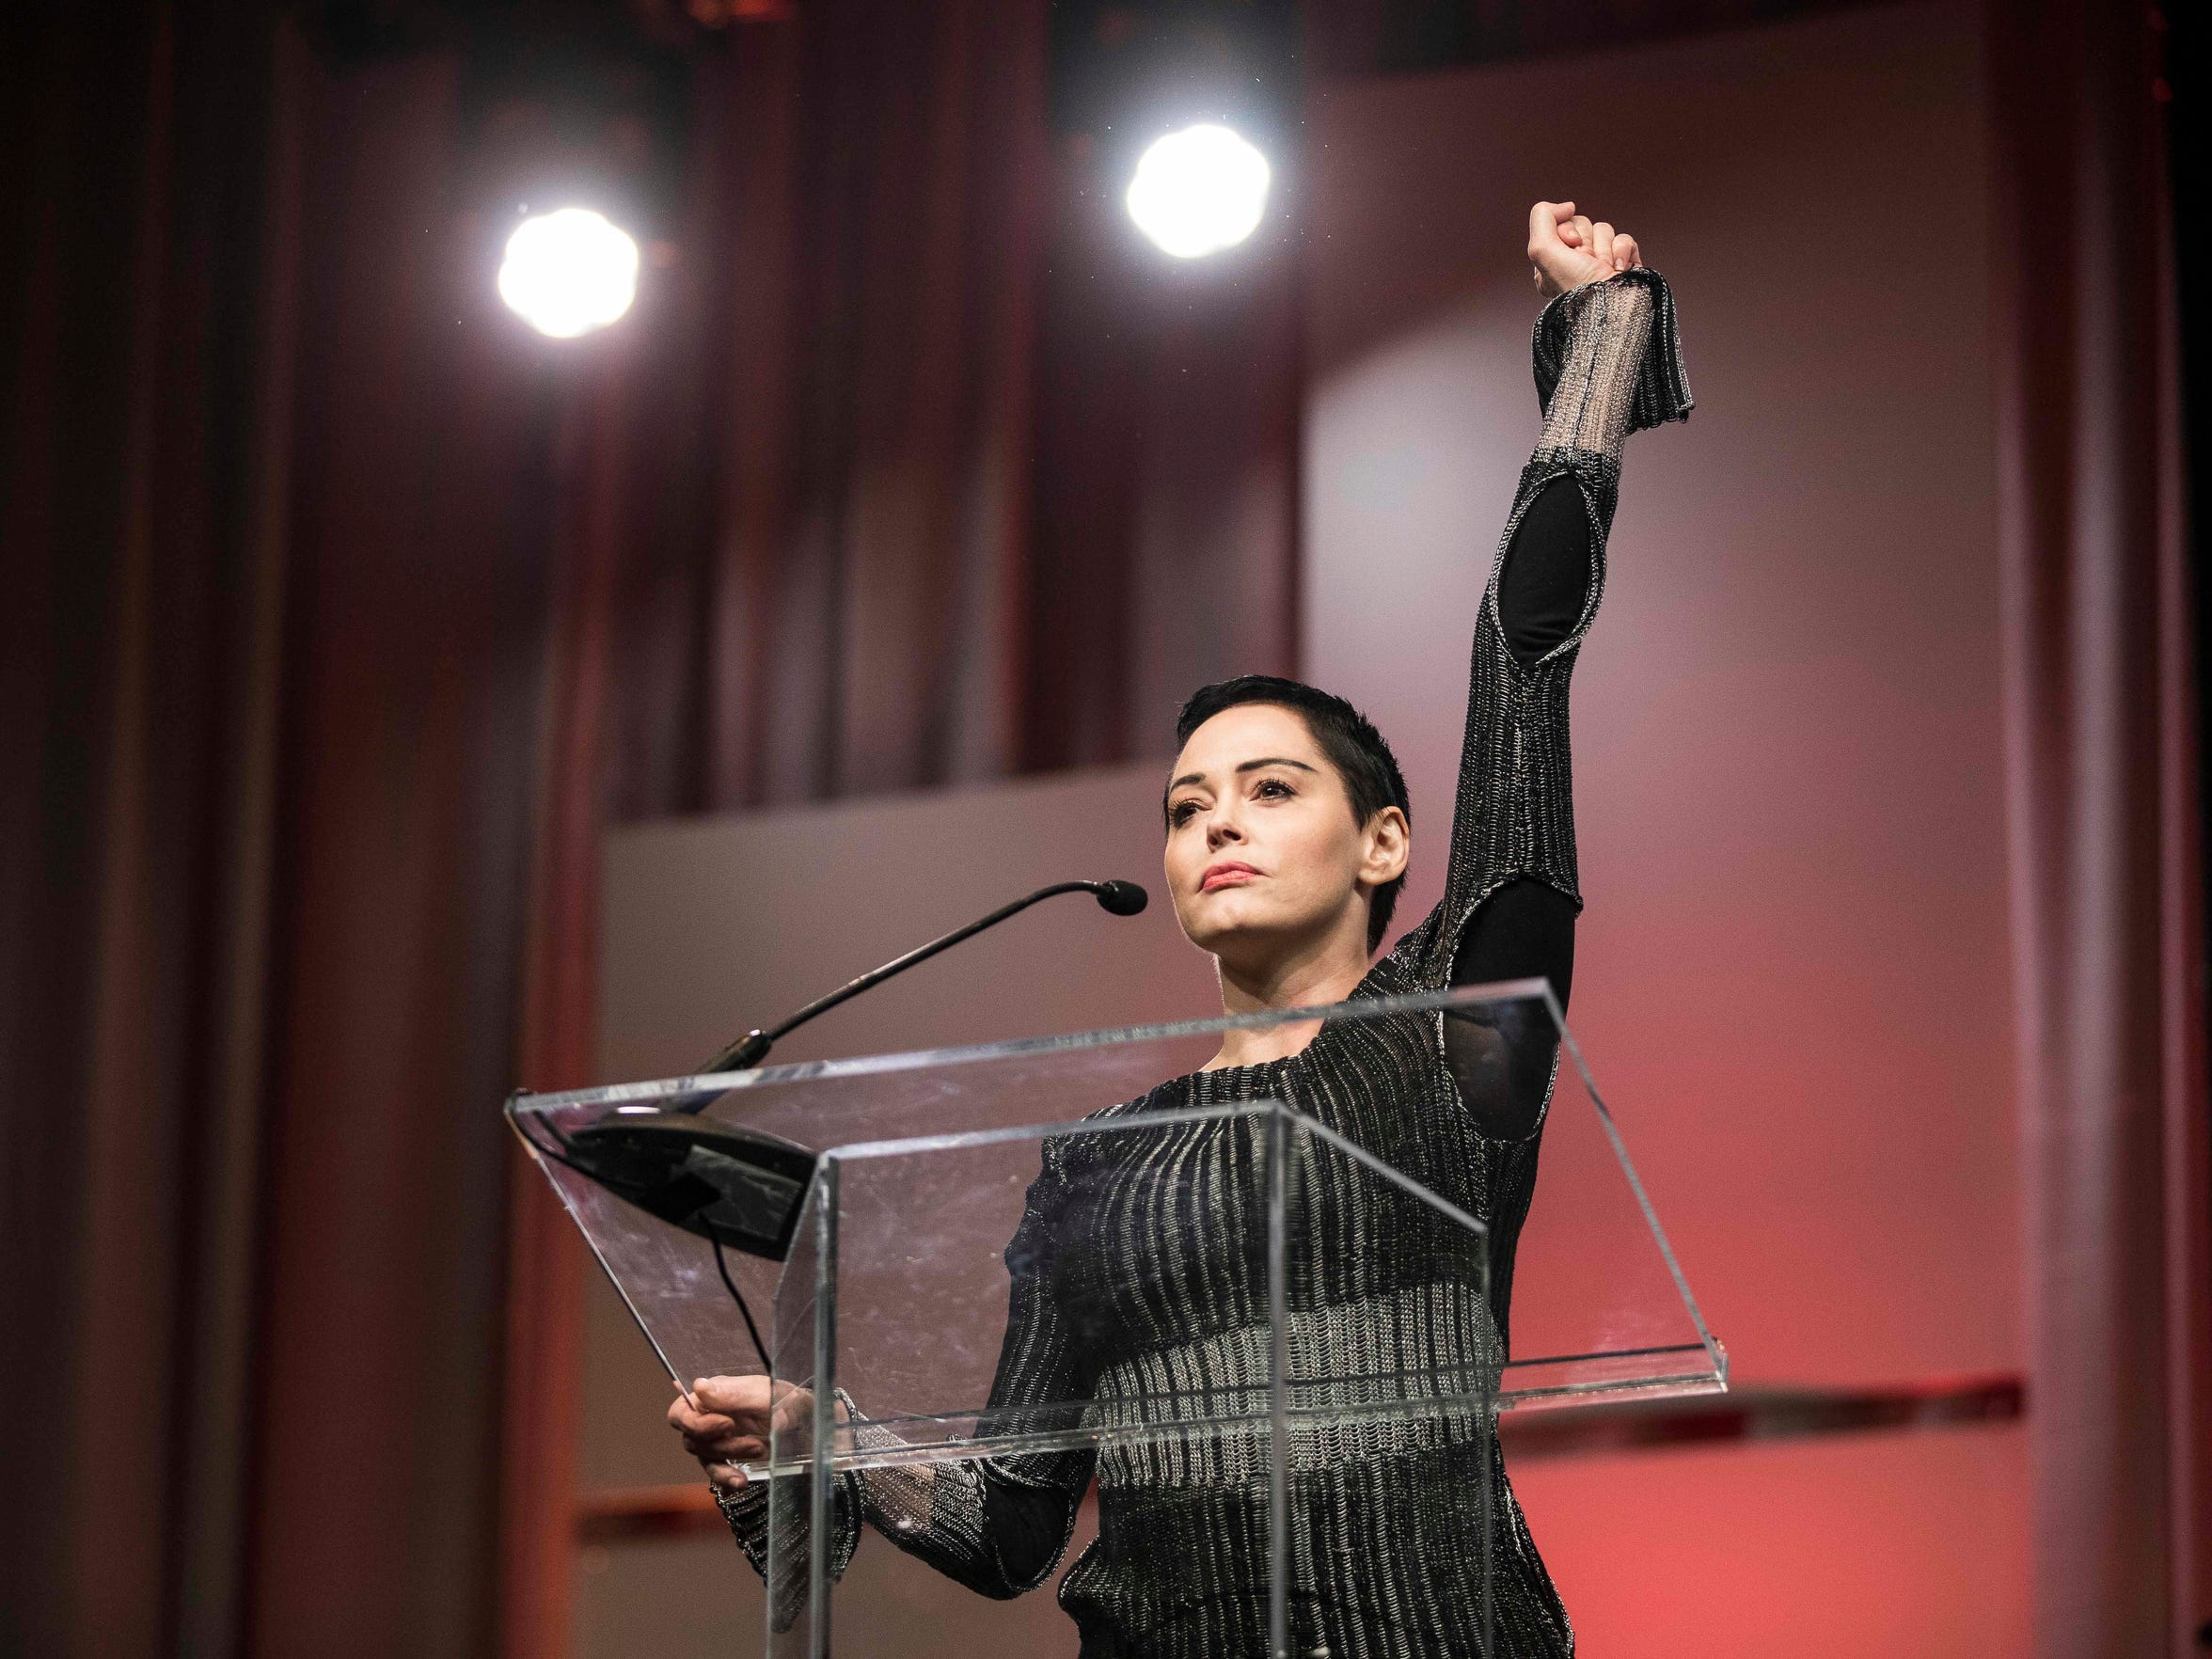 """We are all Me Toos. I have been silenced for 20 years,"" Rose McGowan shouted, fist raised, in a fiery speech at the Women's Convention in Detroit. ""I have been slut-shamed. I've been harassed. I've been maligned … We are one massive collective voice, that is what #RoseArmy is all about."""